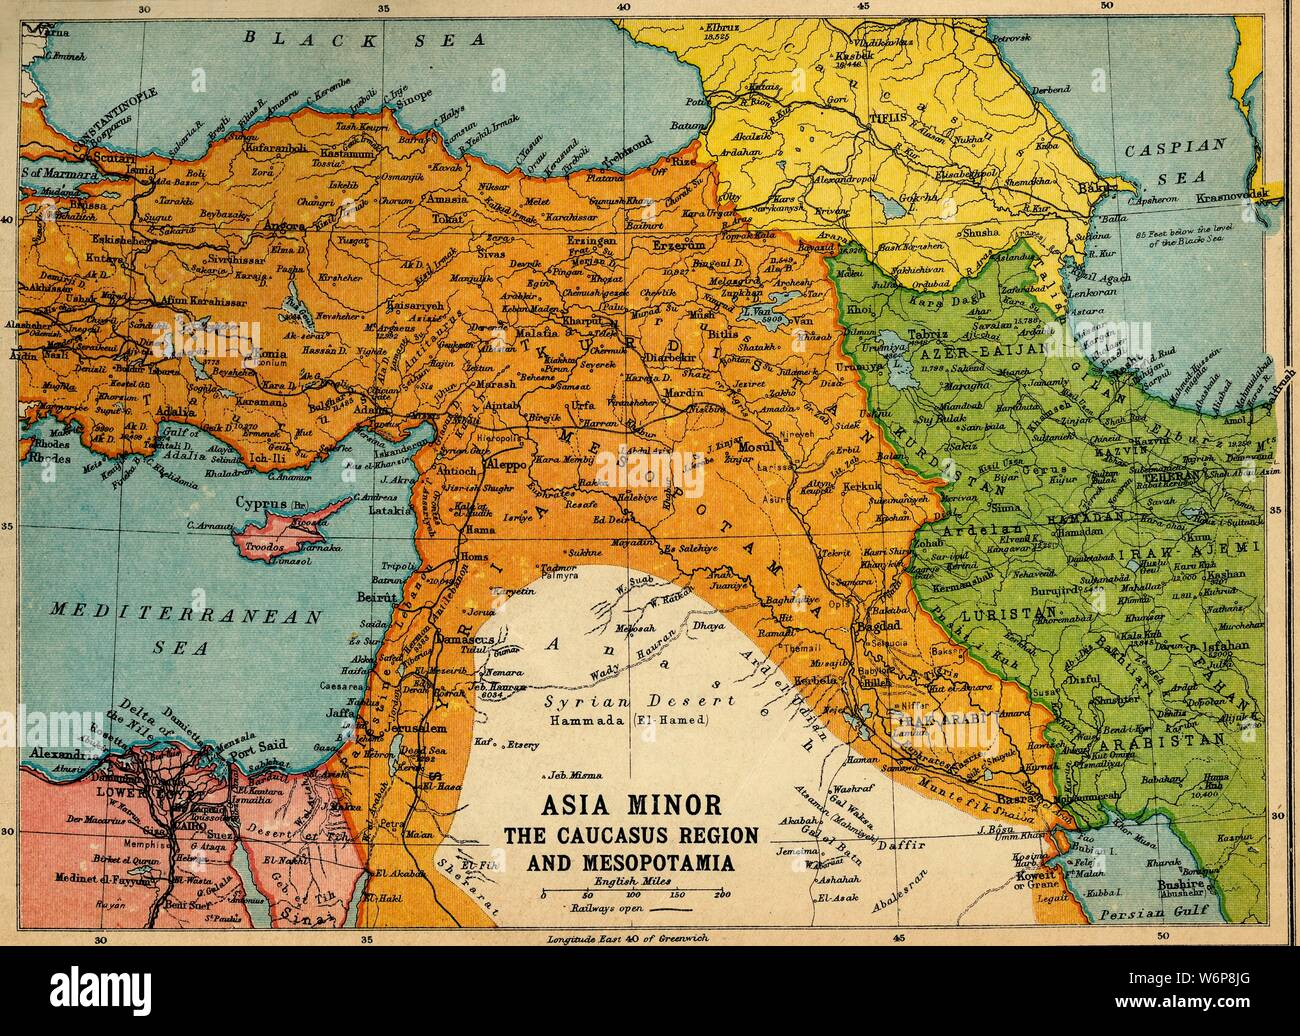 Caucasus Map High Resolution Stock Photography And Images Alamy